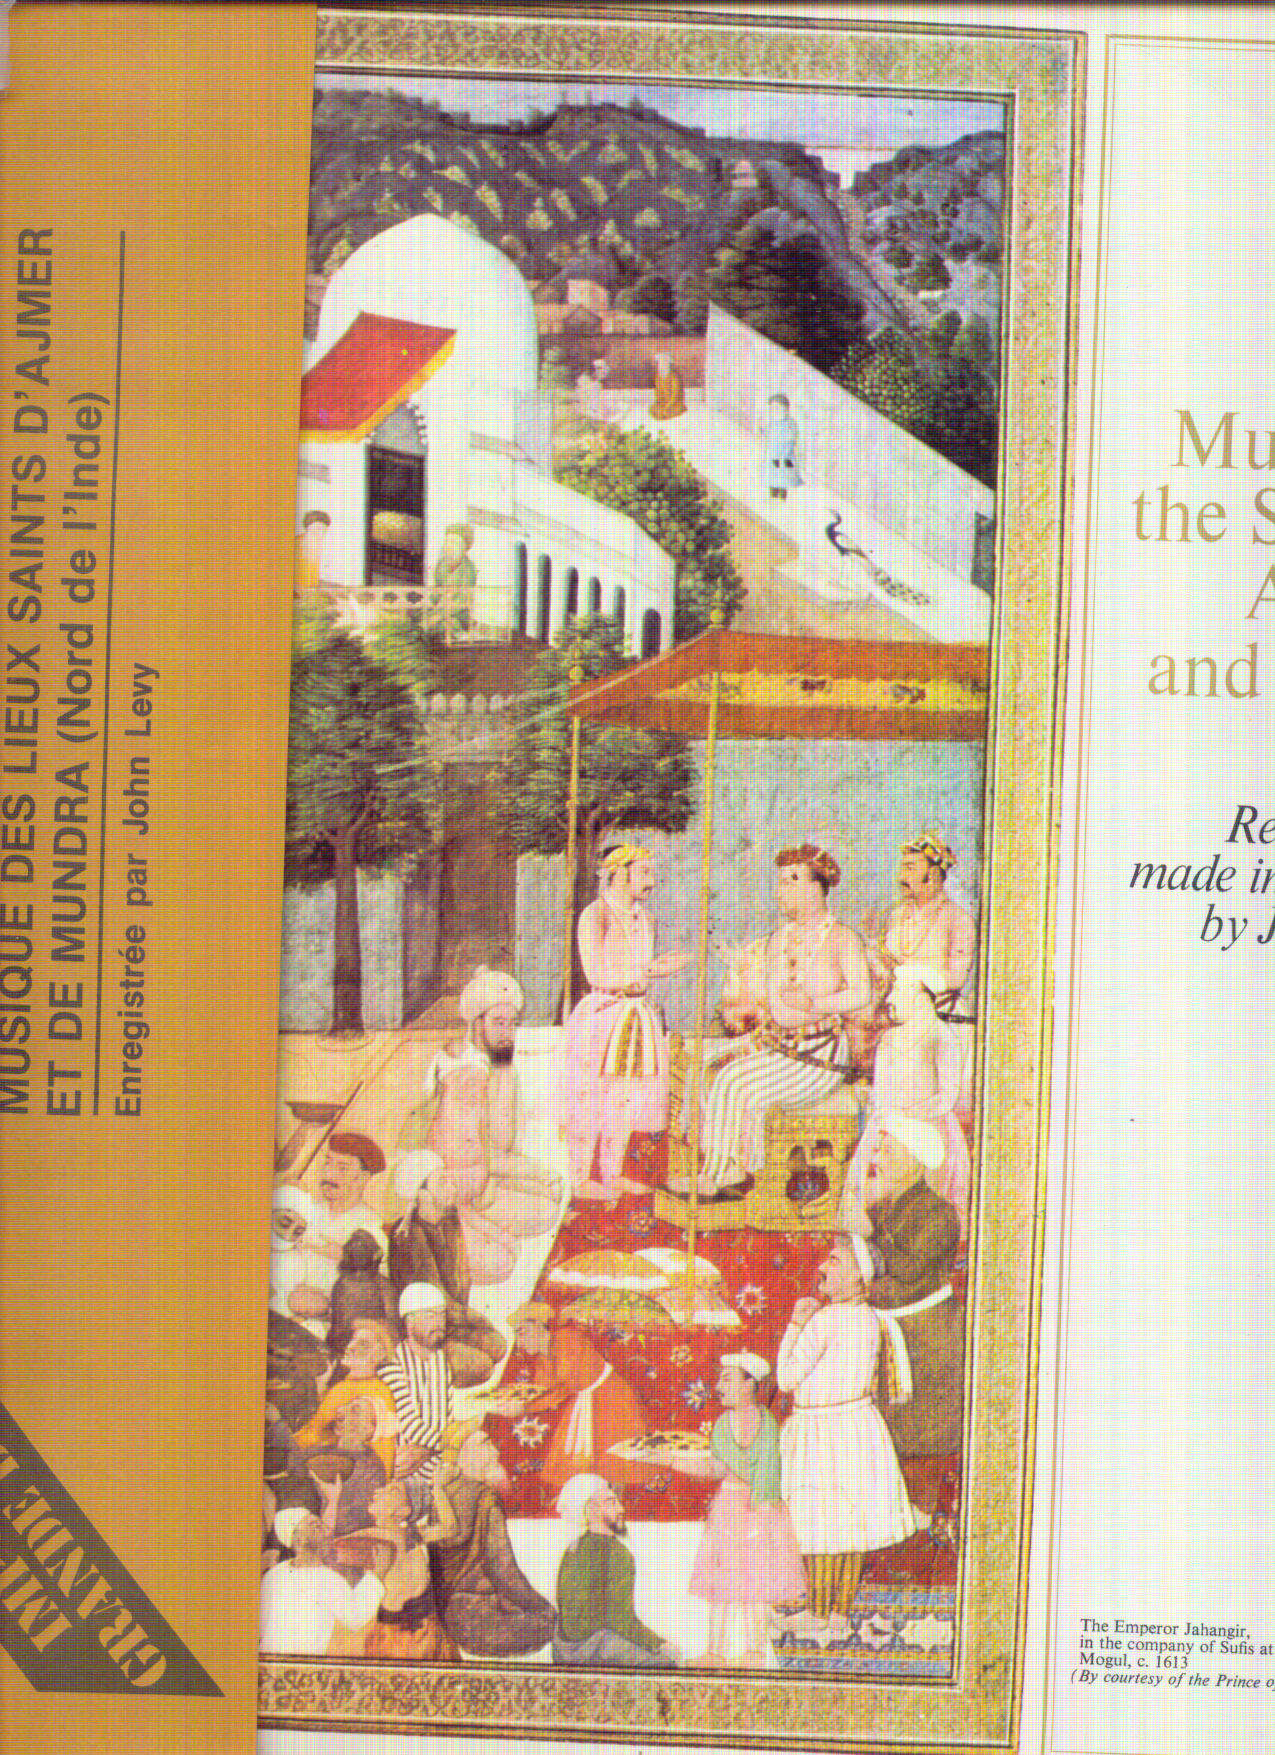 AJMER / MUNDRA / VARIOUS - INDIA MUSIC FROM THE SHRINES OF AJMER AND MUNDRA